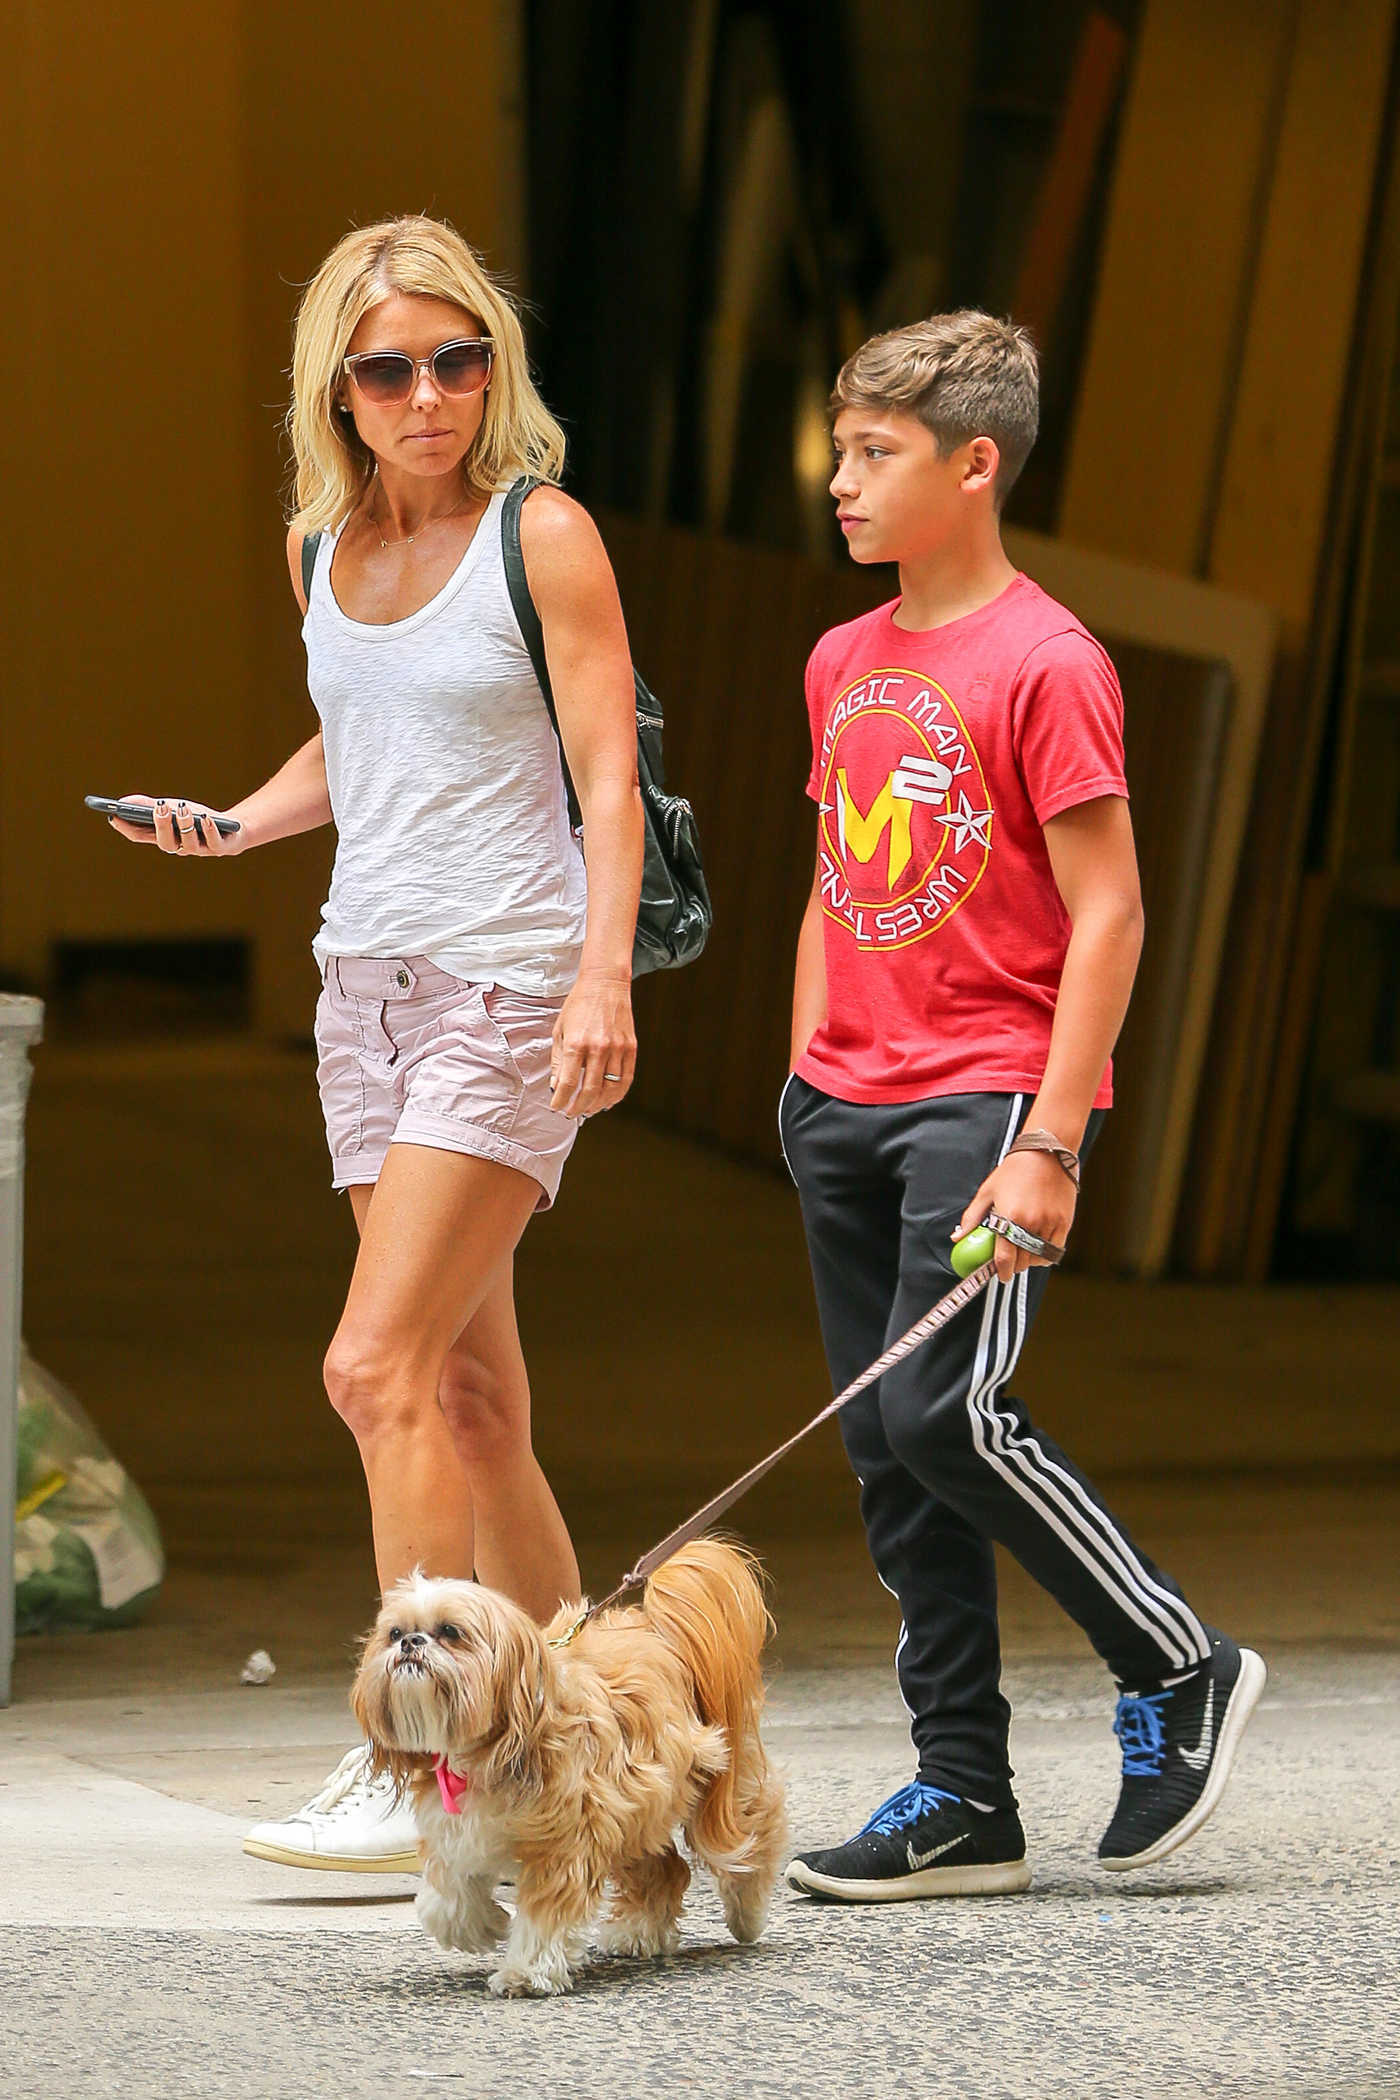 Kelly Ripa Was Seen With Her Dog in Central Park in  New York City 07/25/2016